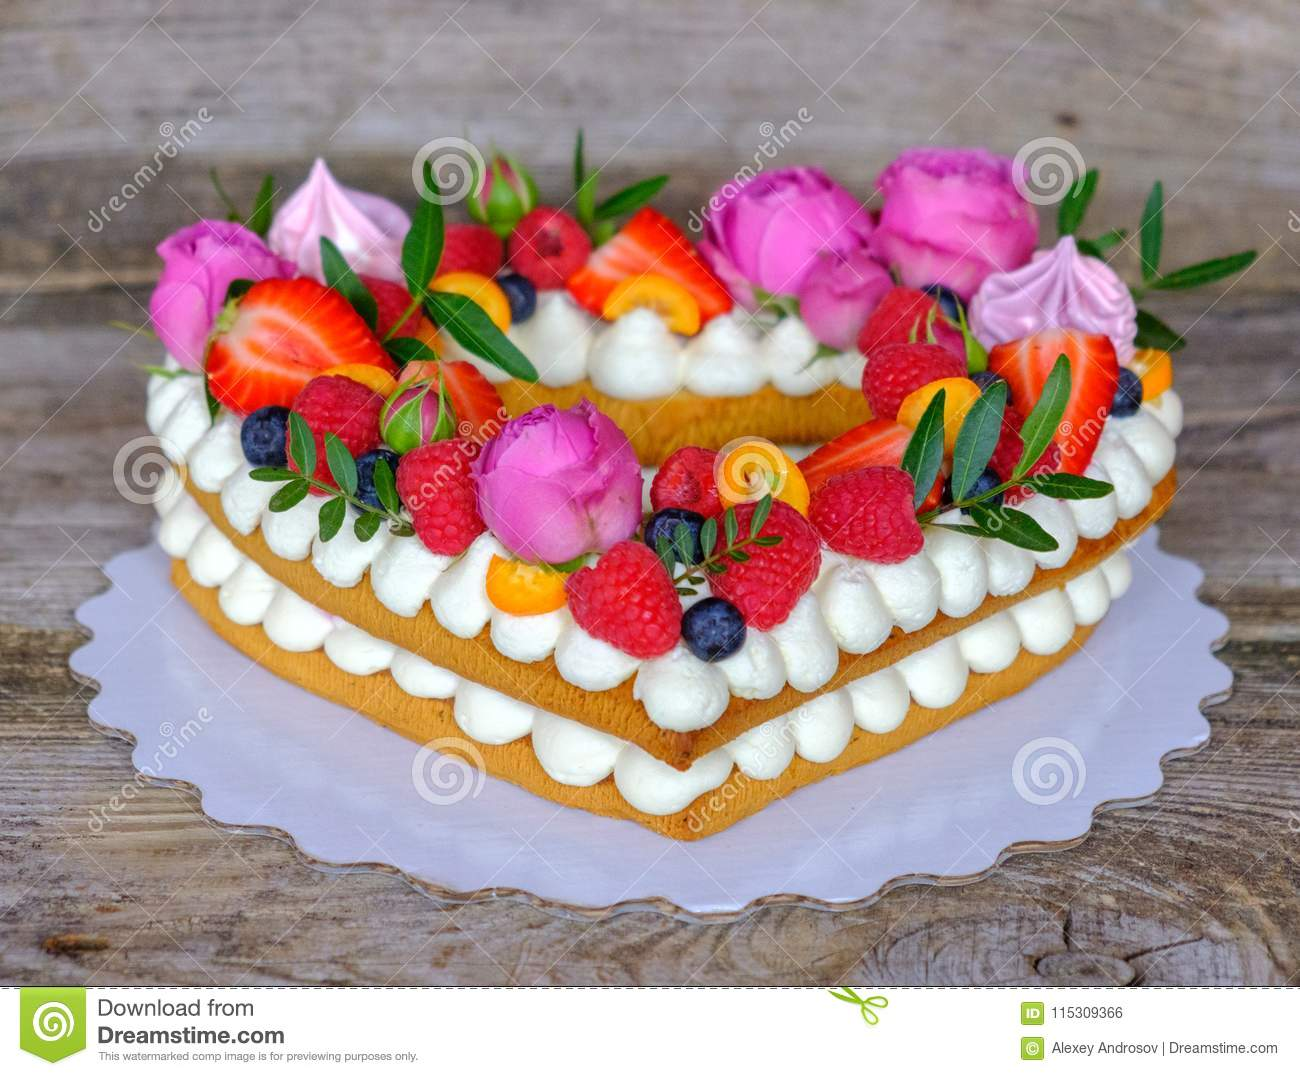 Home made heart shaped wedding cake stock photo image of biscuit beautiful homemade wedding cake in the shape of a heart decorated with flowers and berries izmirmasajfo